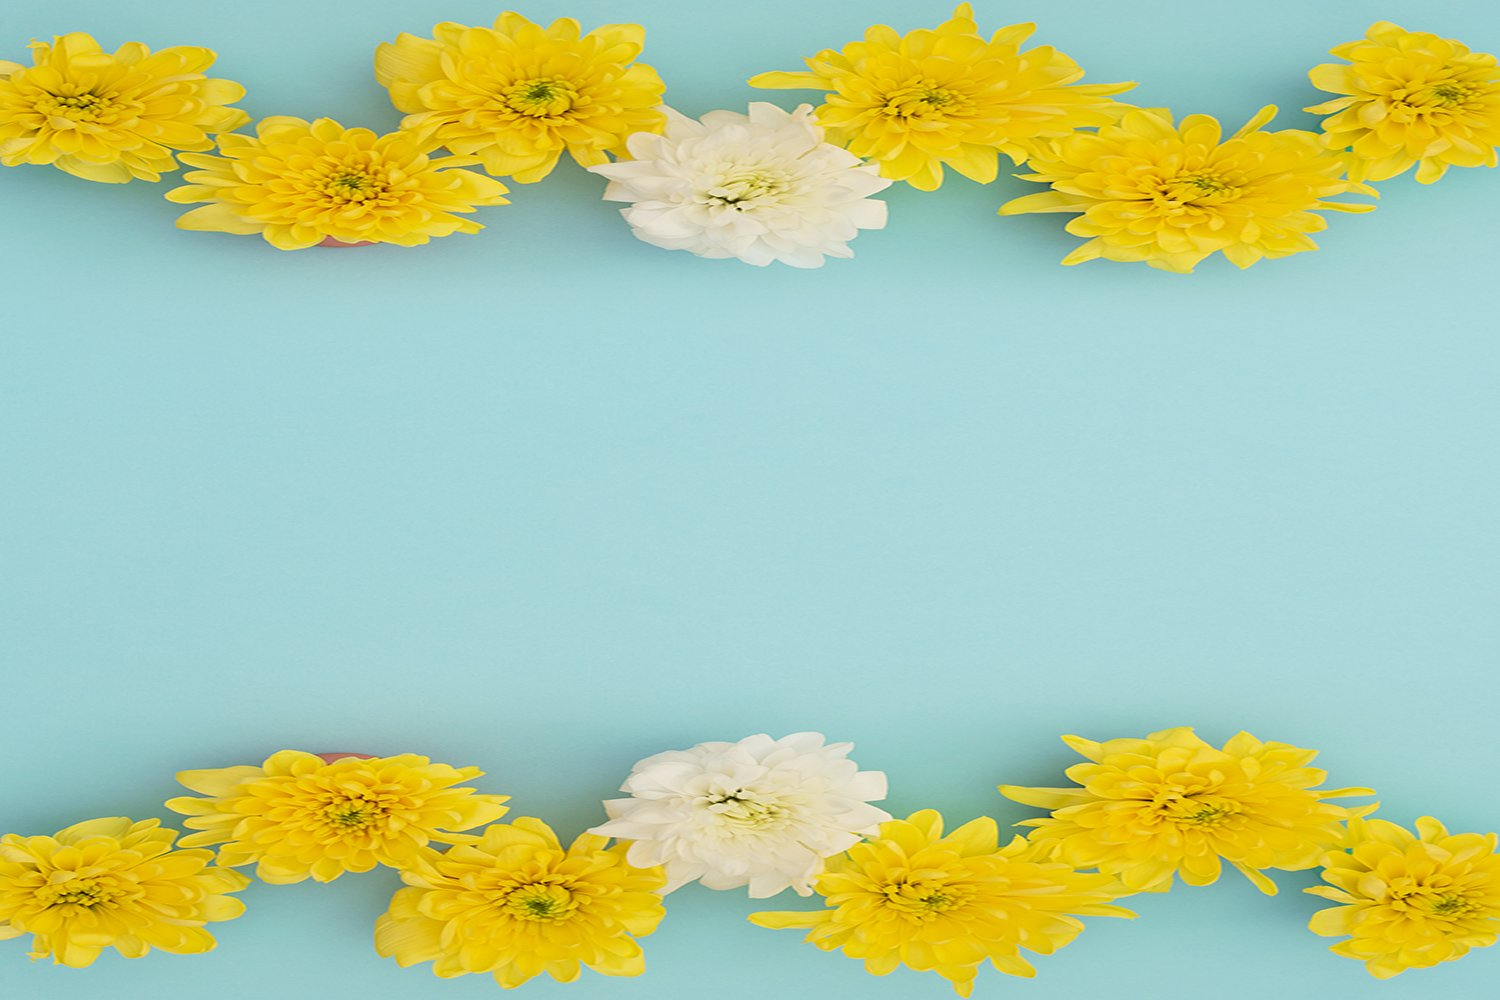 Yellow and white flowers on blue background. example image 1